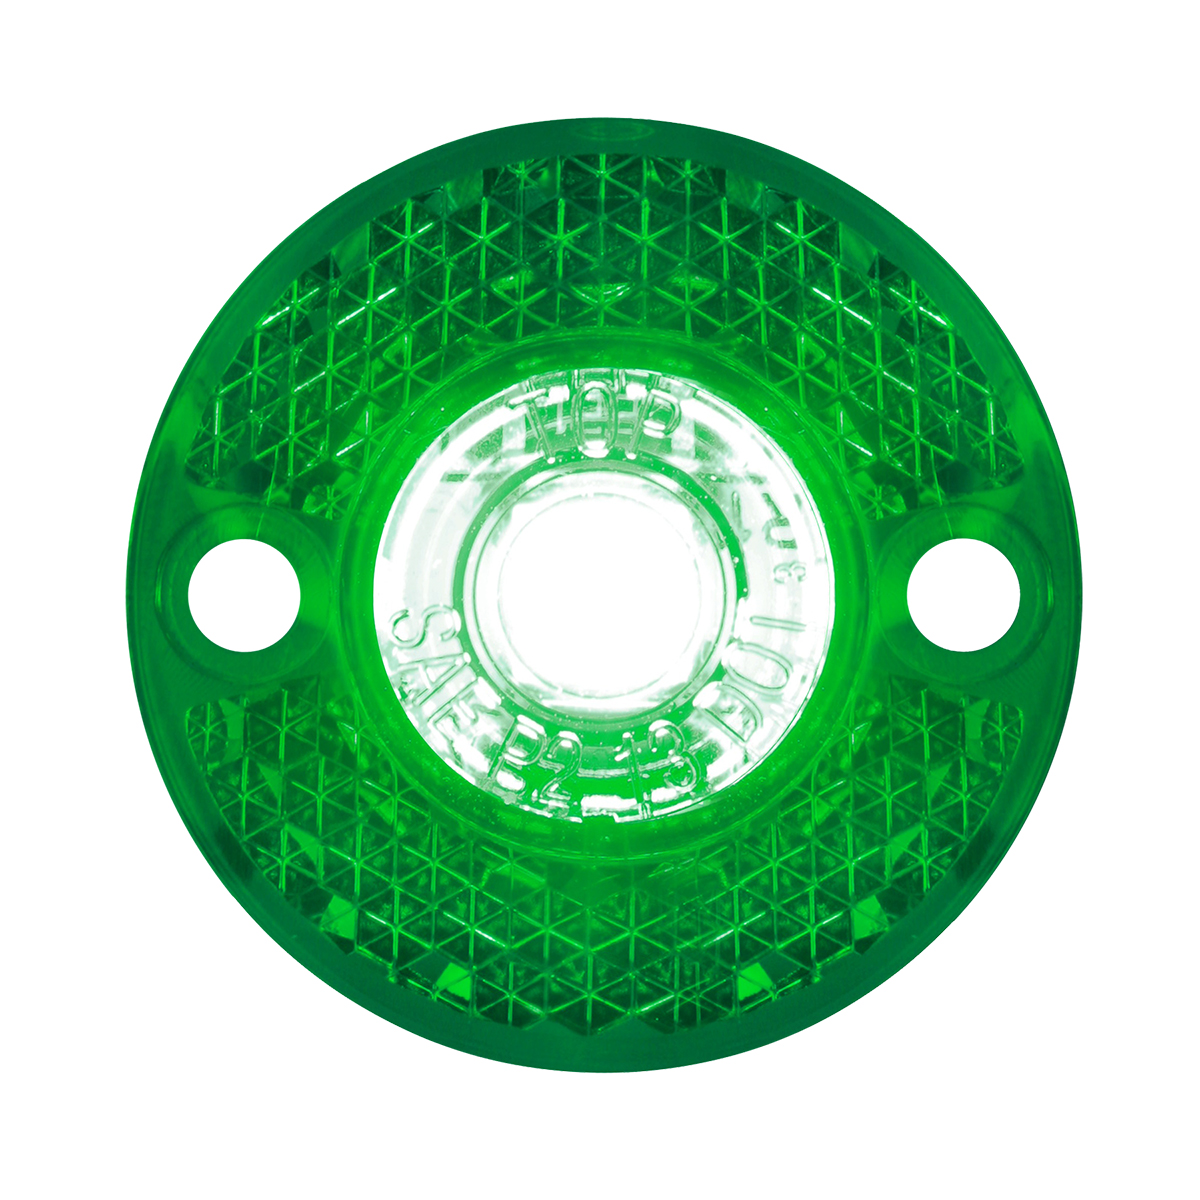 81786 Mini Surface Mount LED Light in Green/Green